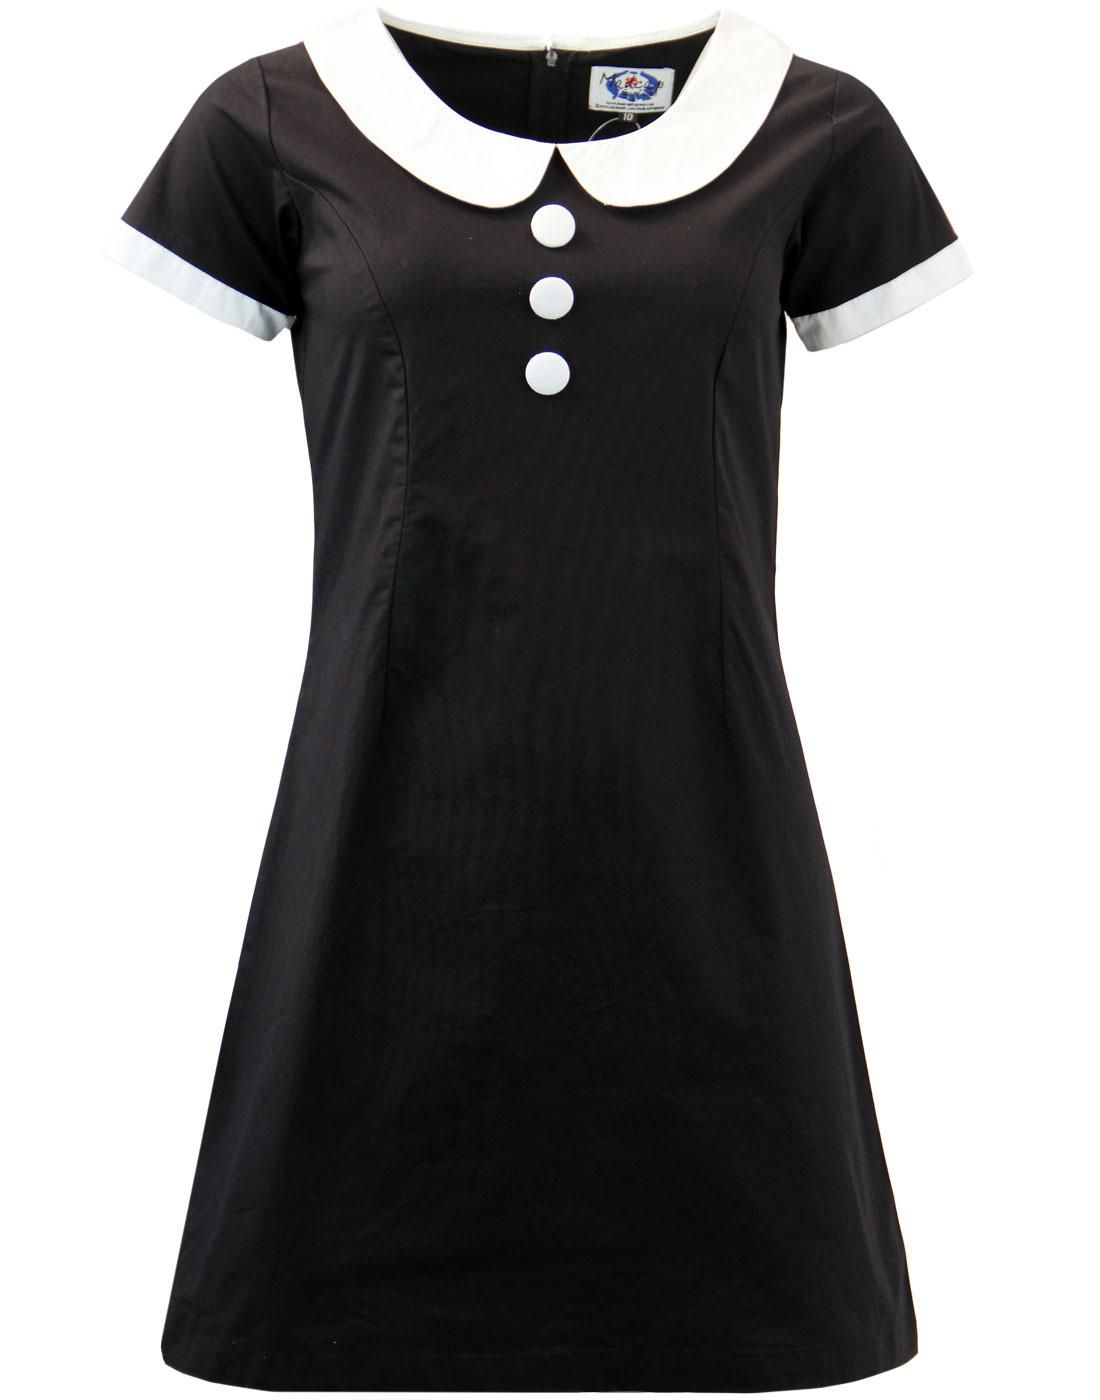 4653e35a7d Domino Madcap England Mod Peter Pan Collar Dress in 2018